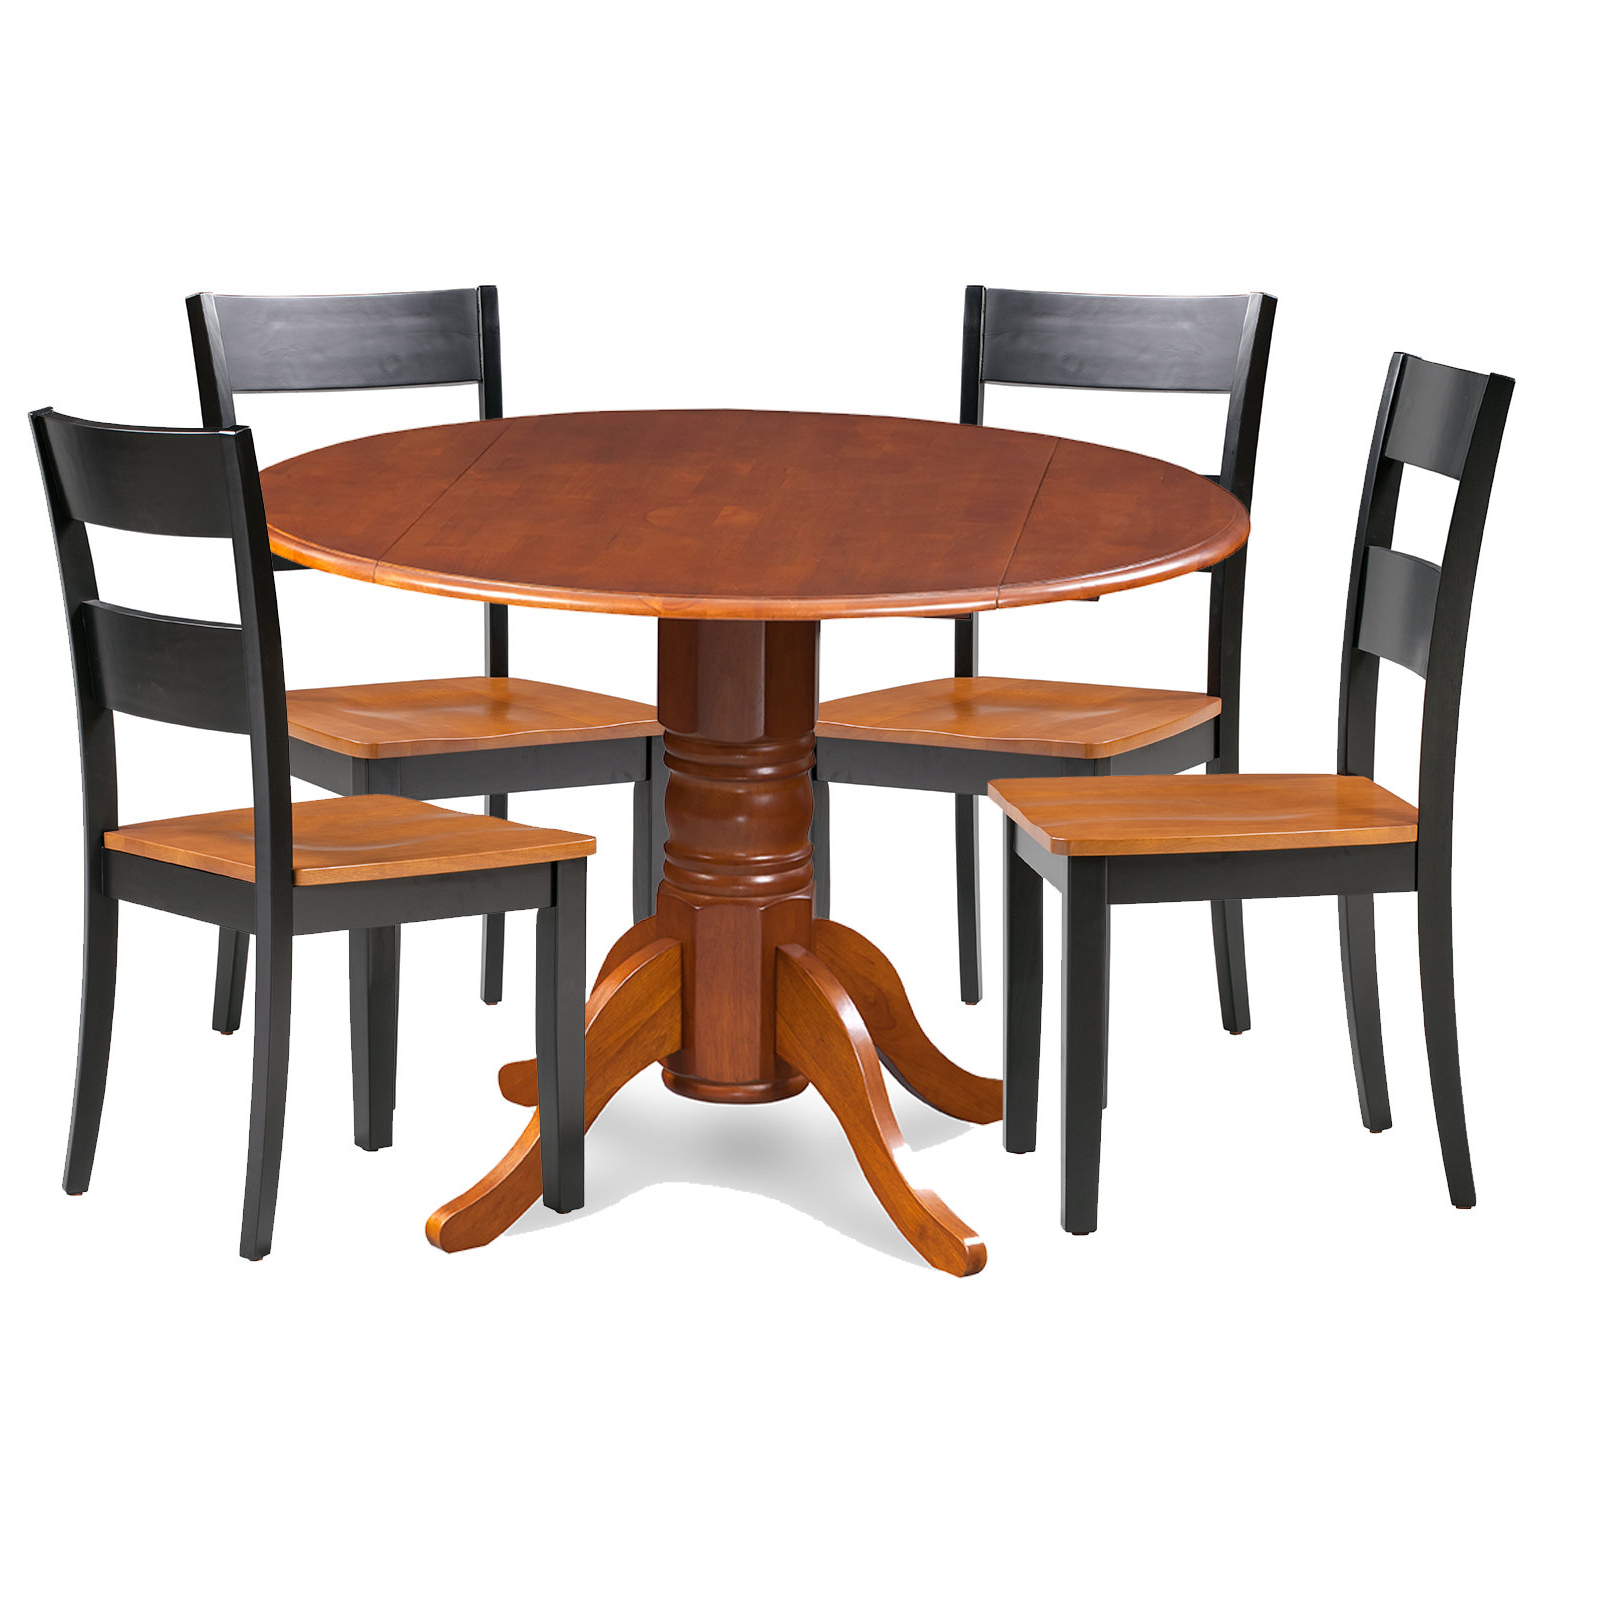 Emmeline 5 Piece Breakfast Nook Dining Sets Intended For Preferred Charlton Home Cordell 5 Piece Drop Leaf Breakfast Nook Solid Wood Dining Set (View 4 of 20)